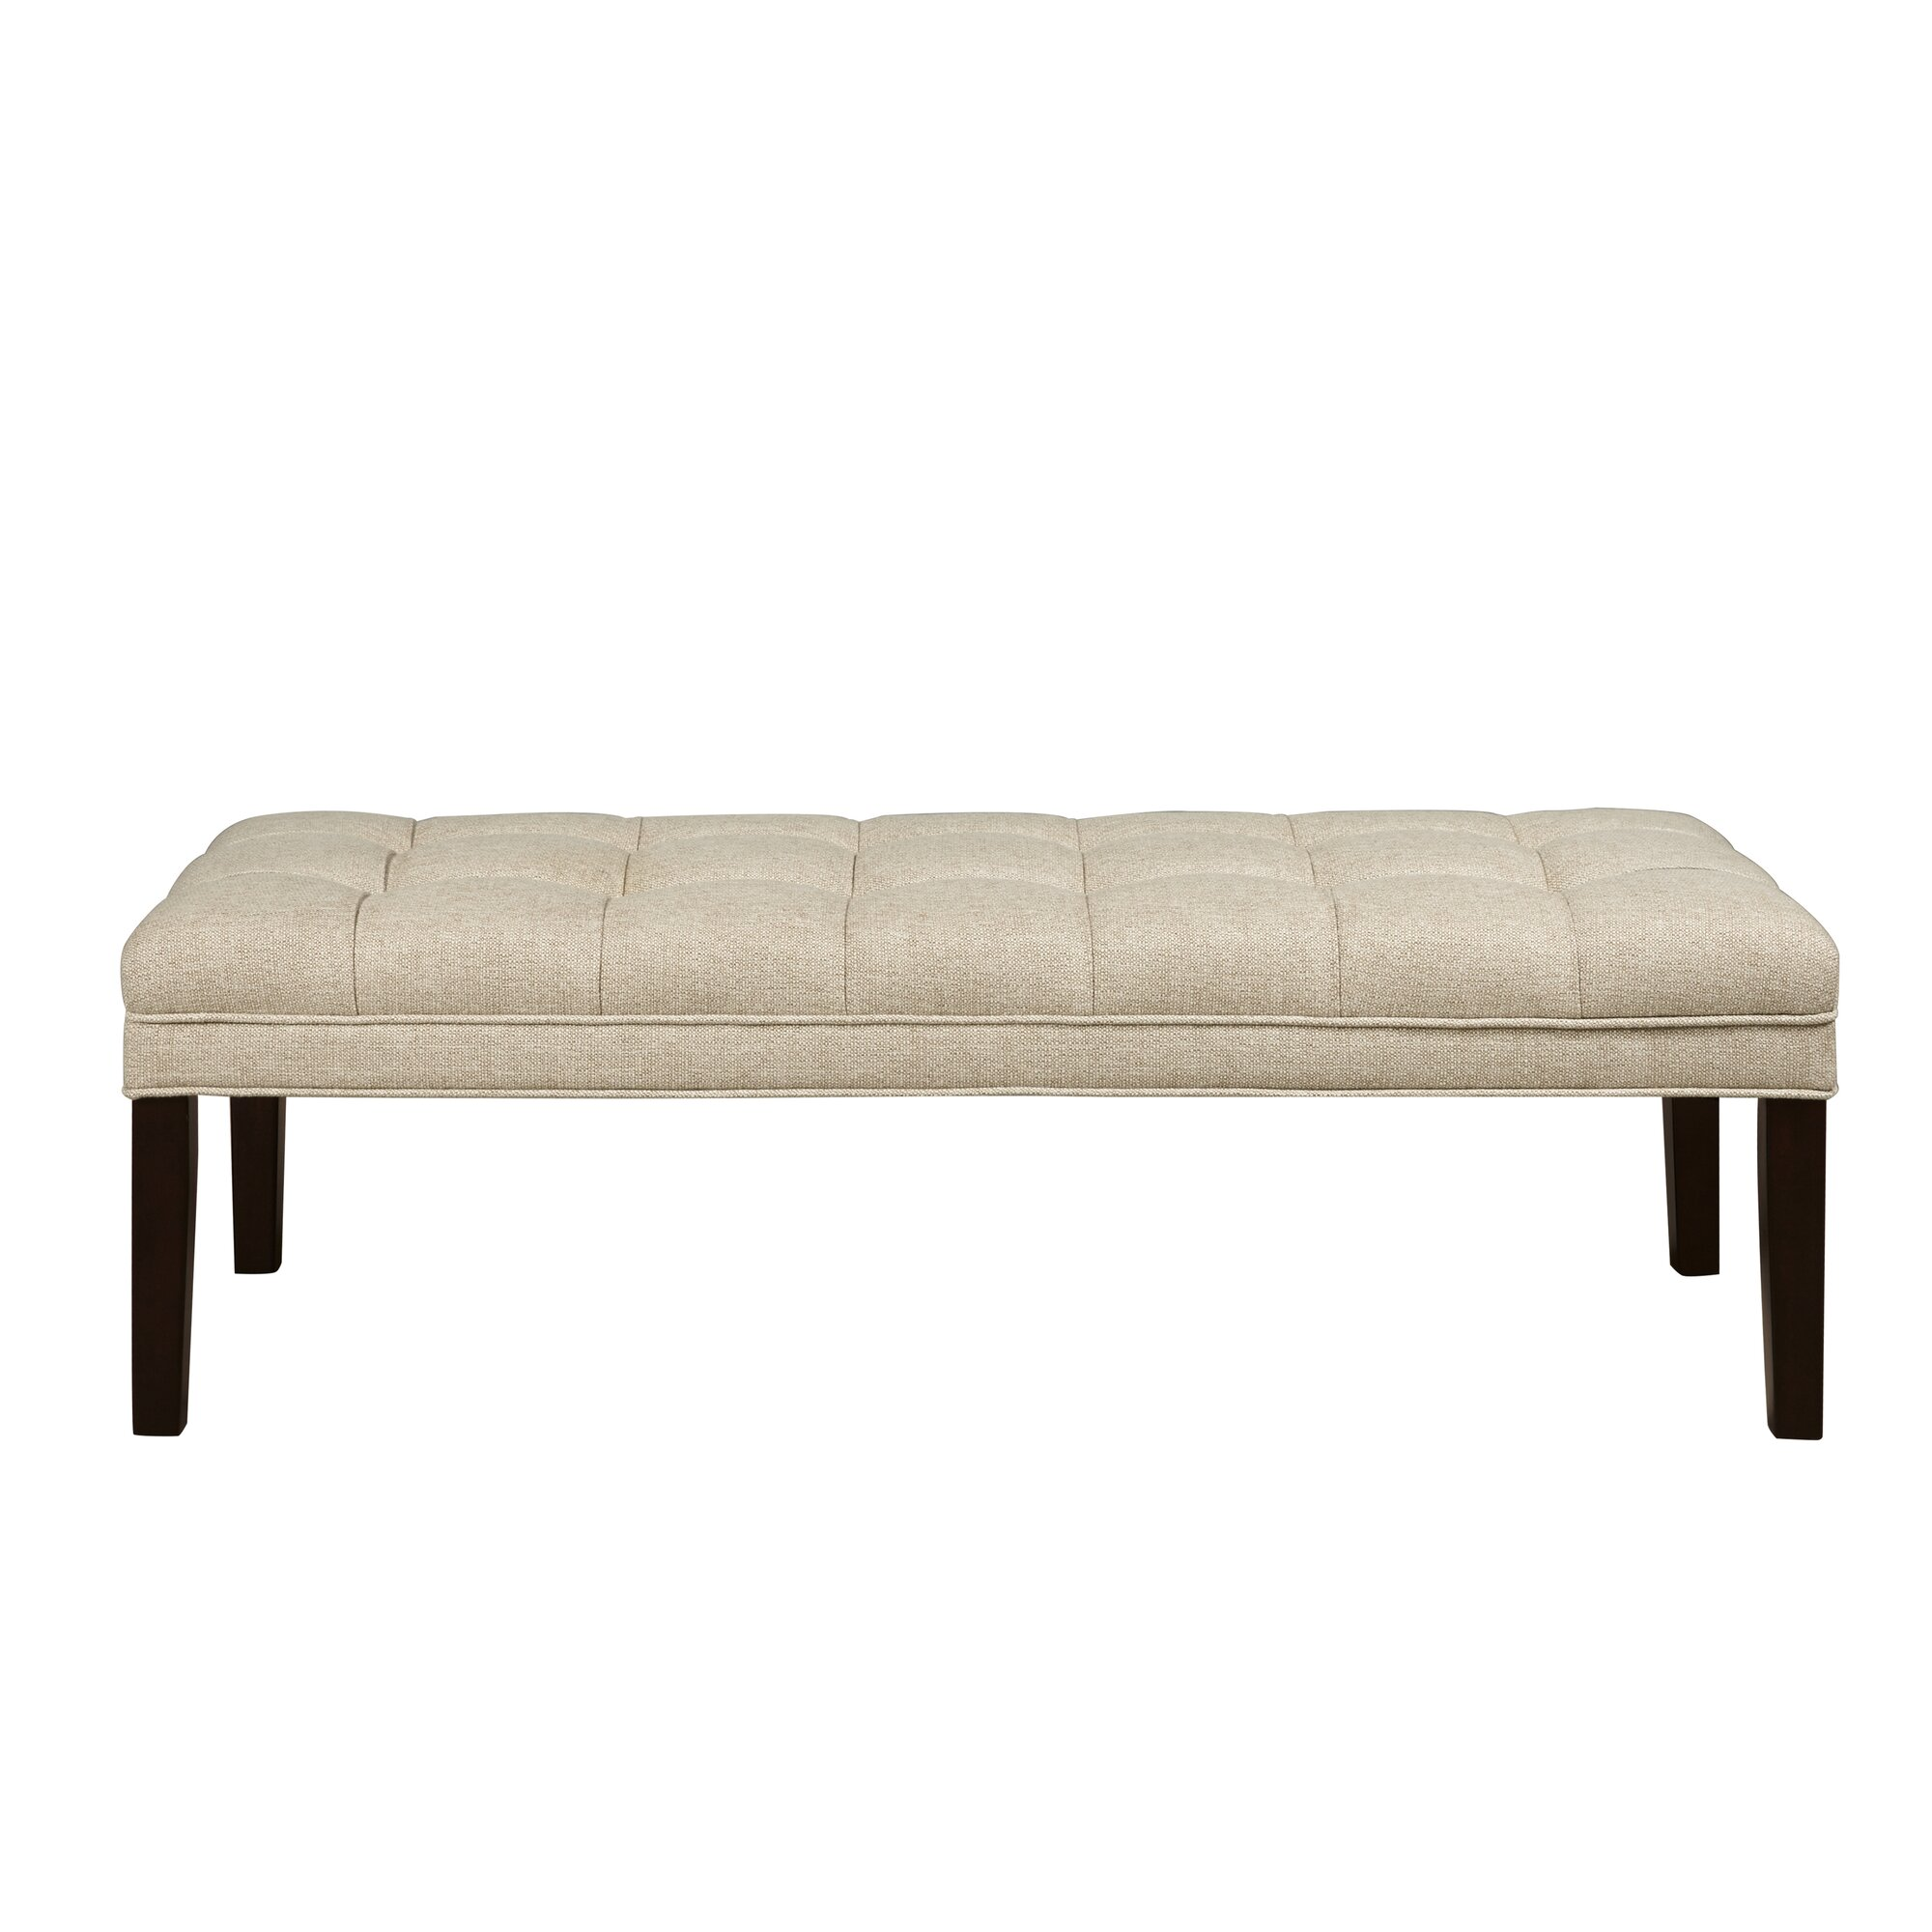 Bedroom bench with arms - Upholstered Tufted Bedroom Bench